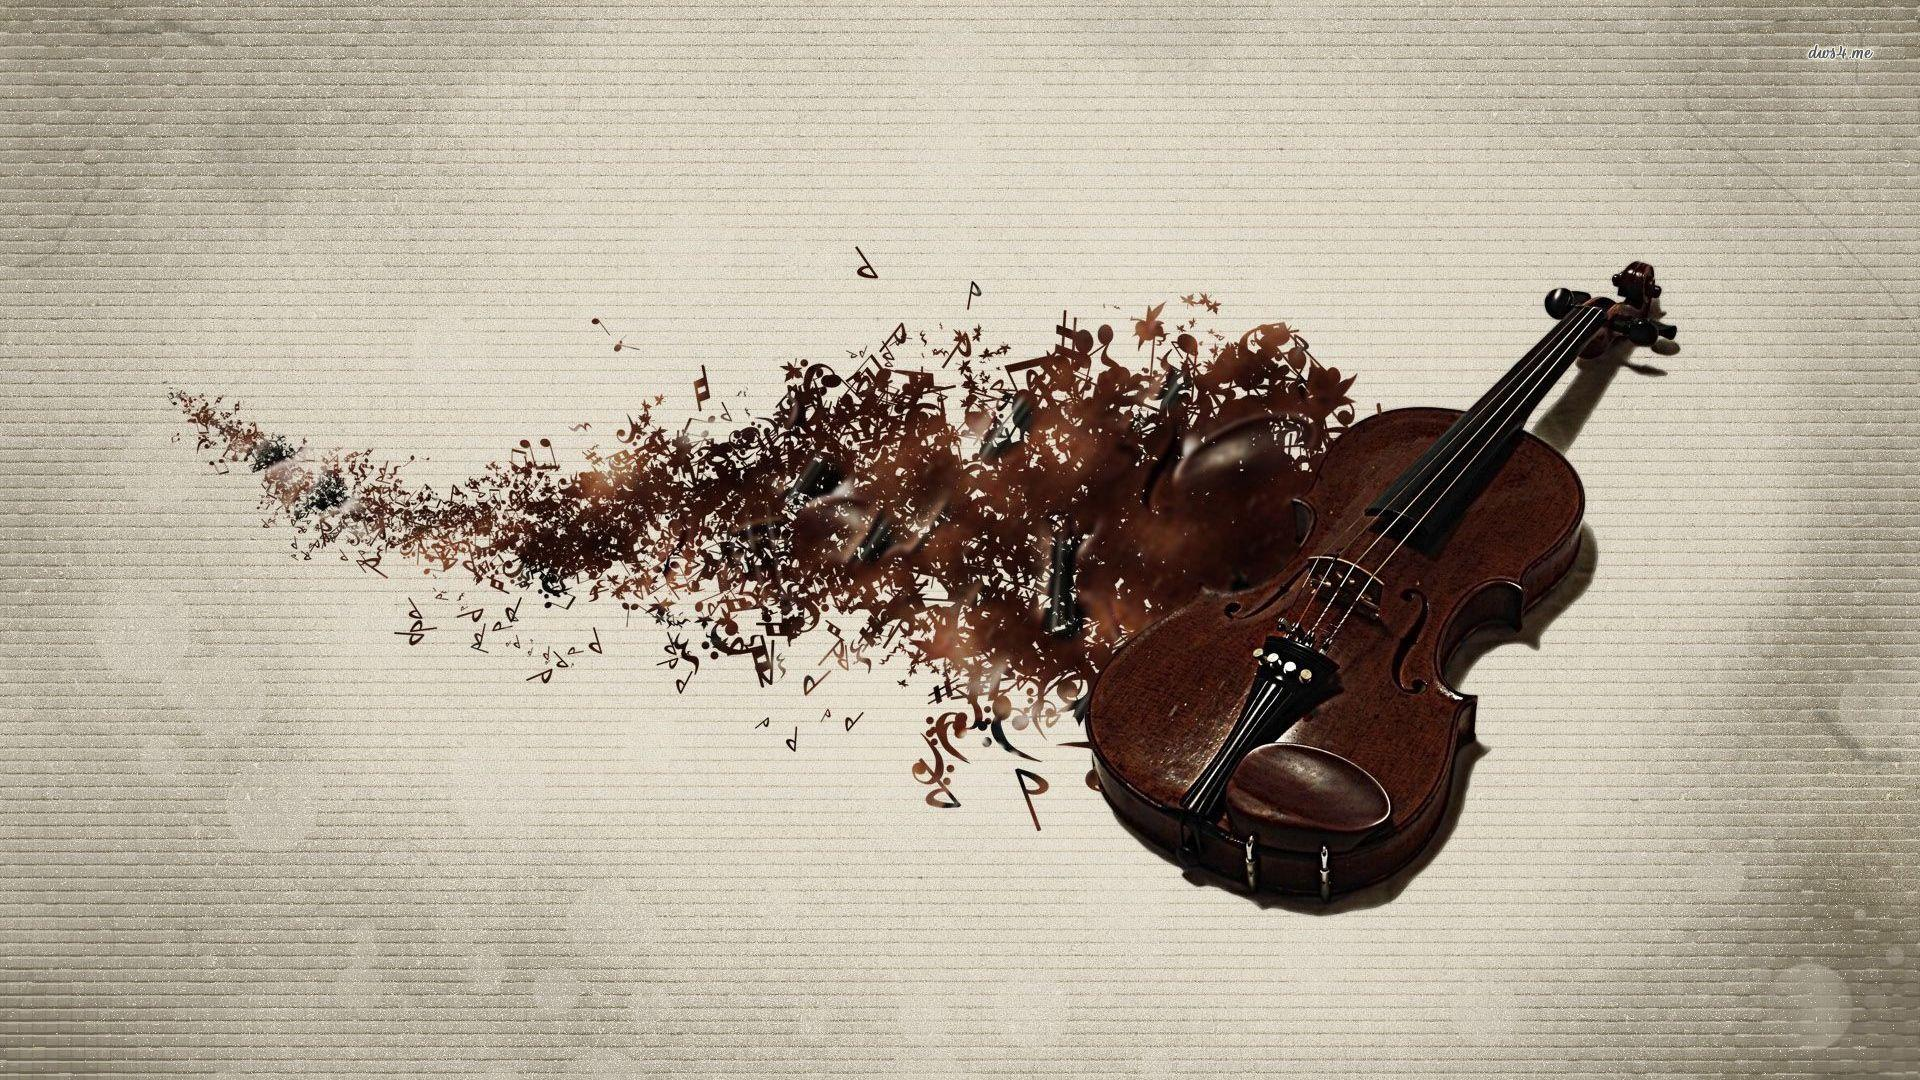 Violin wallpaper - Photography wallpapers - #